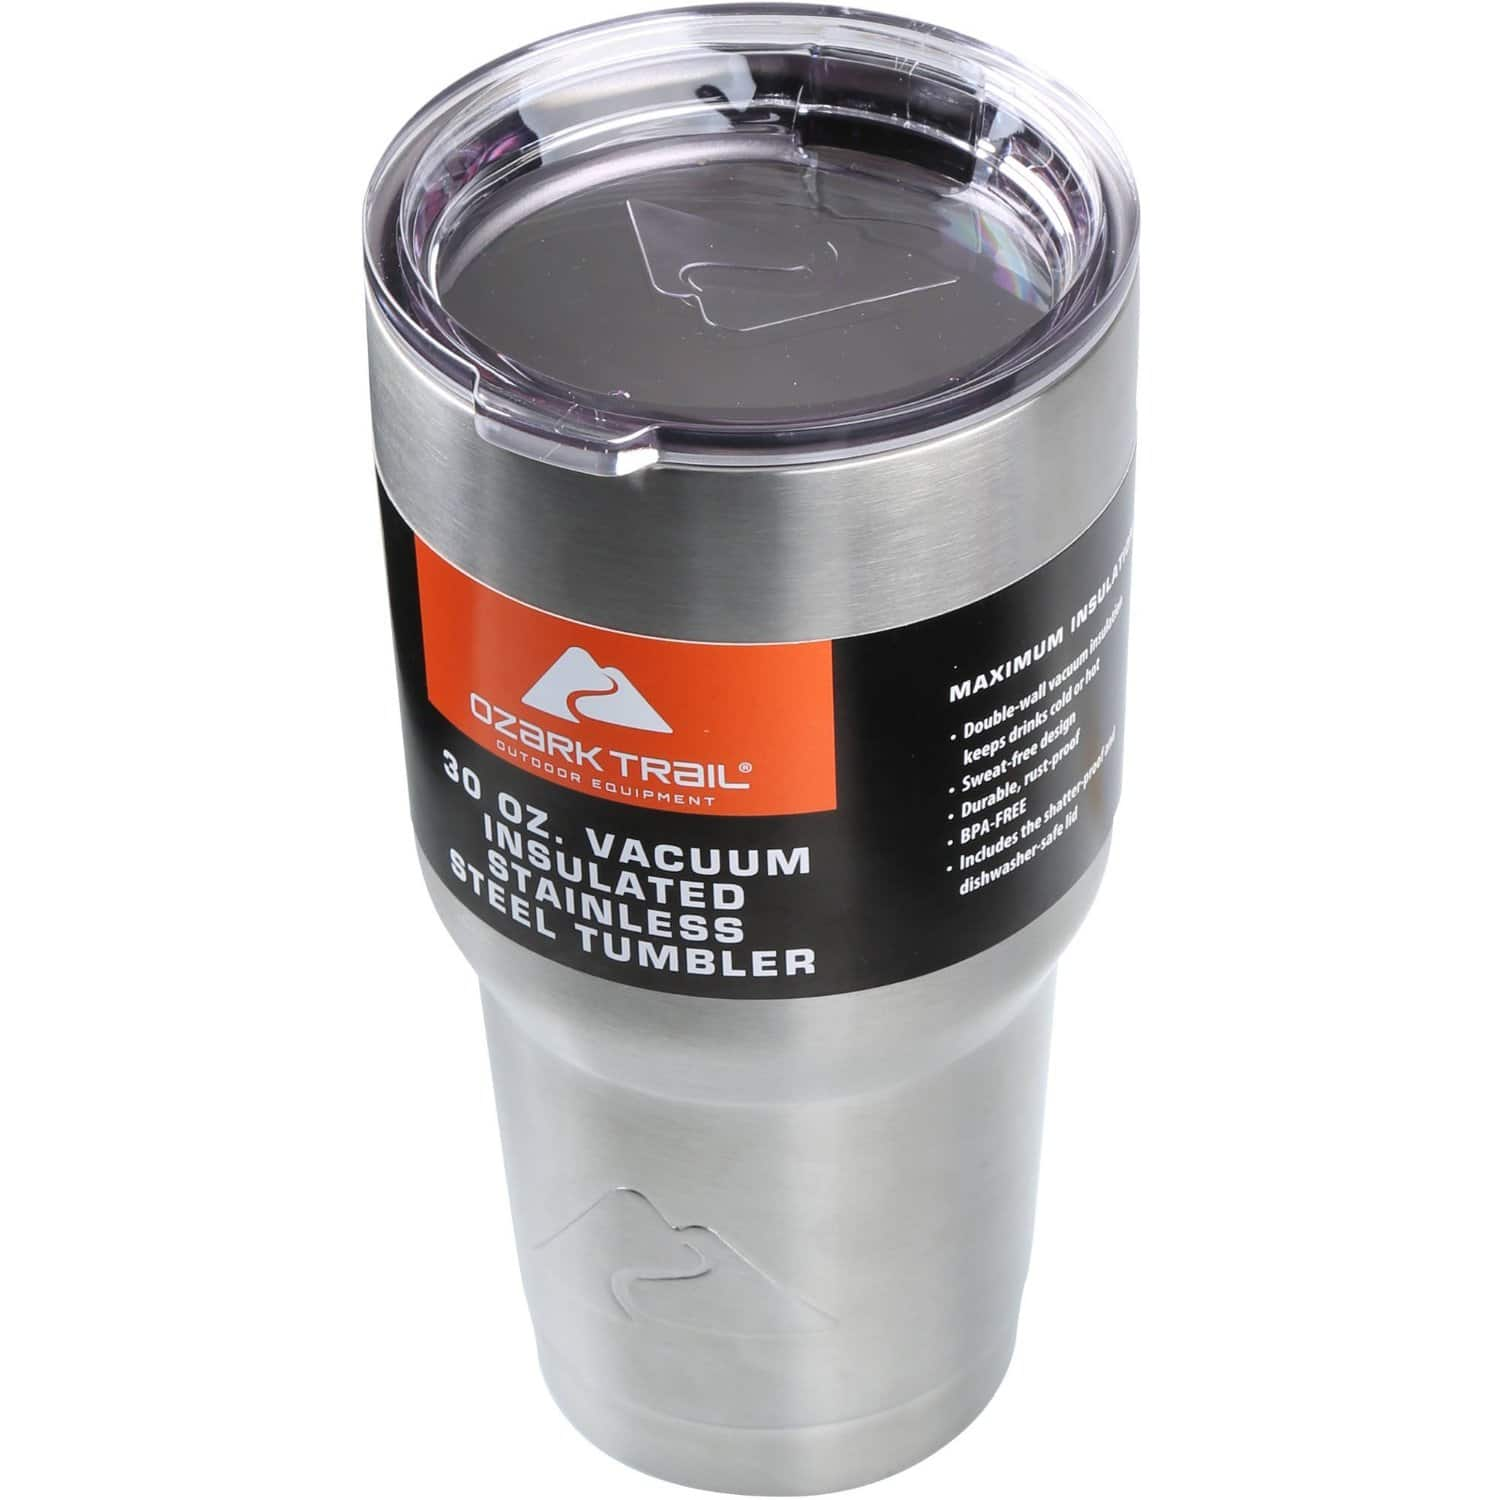 Ozark Trail 30oz Double-Wall Vaccum-Sealed Tumbler  $9.75 + Free Store Pickup